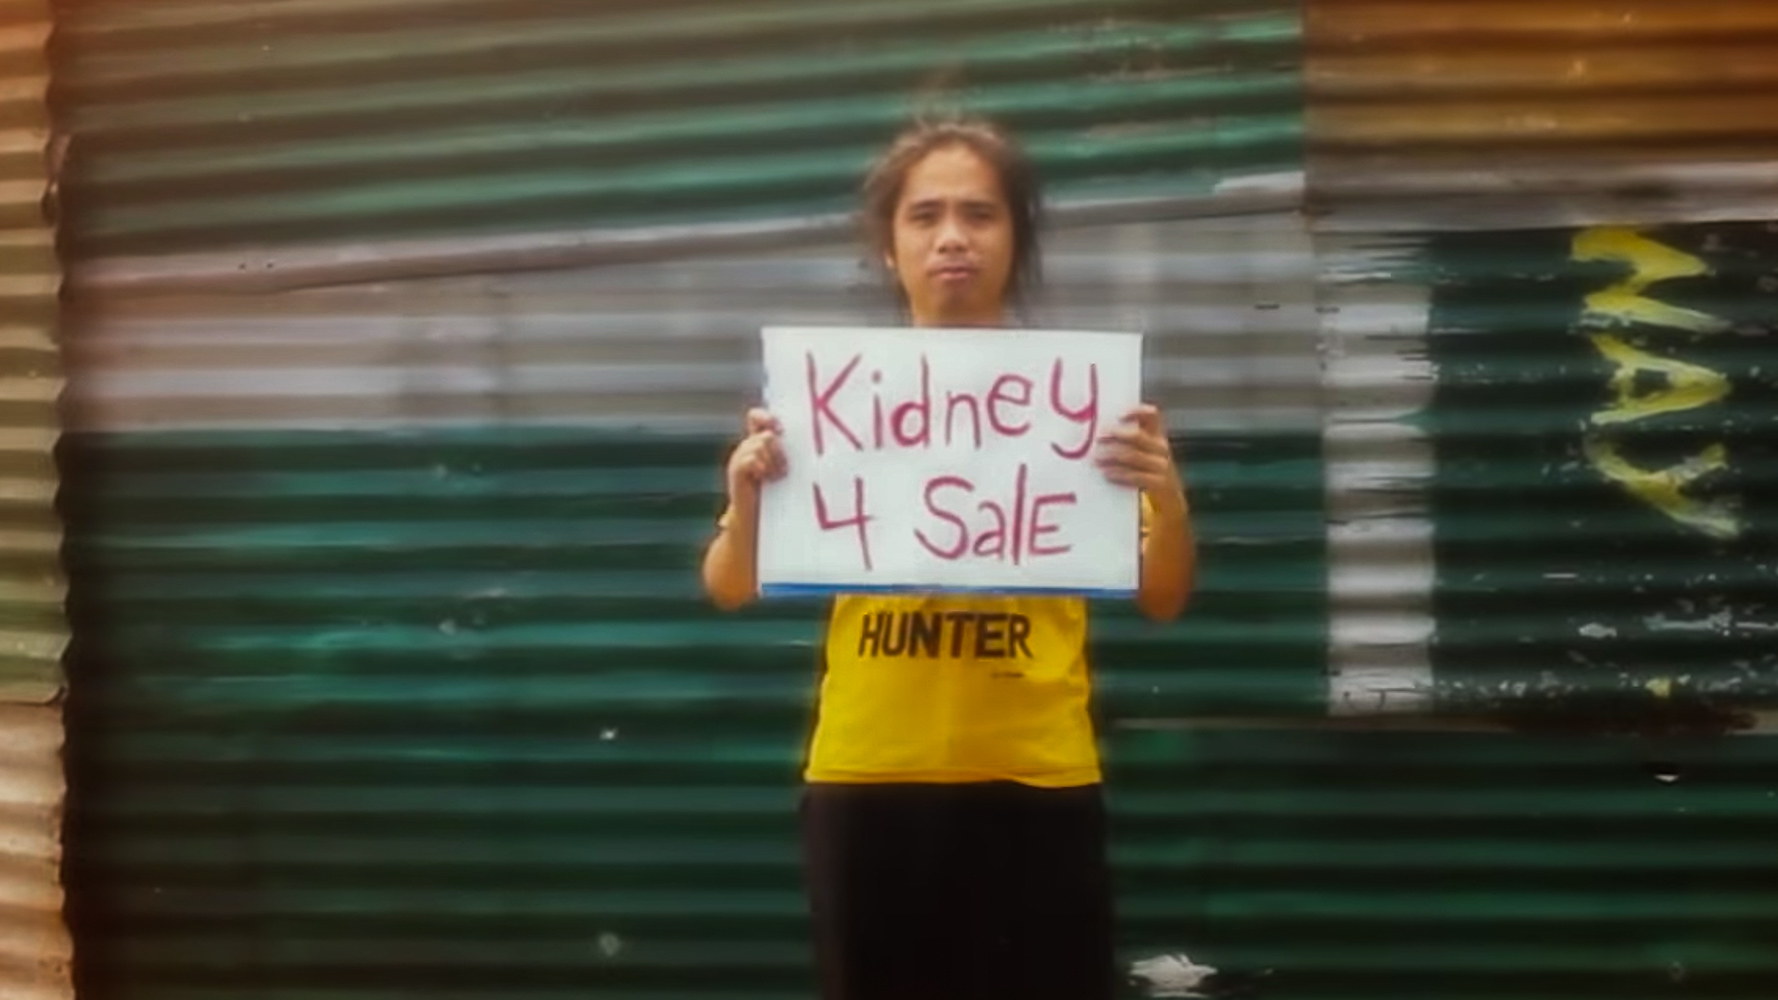 KIDNEY 4 SALE. To keep 'Sally' moving, direk Avid Liongoren needed to raise money for post-production. This is a screenshot from one of his YouTube videos asking fans to chip in to save 'Sally.'